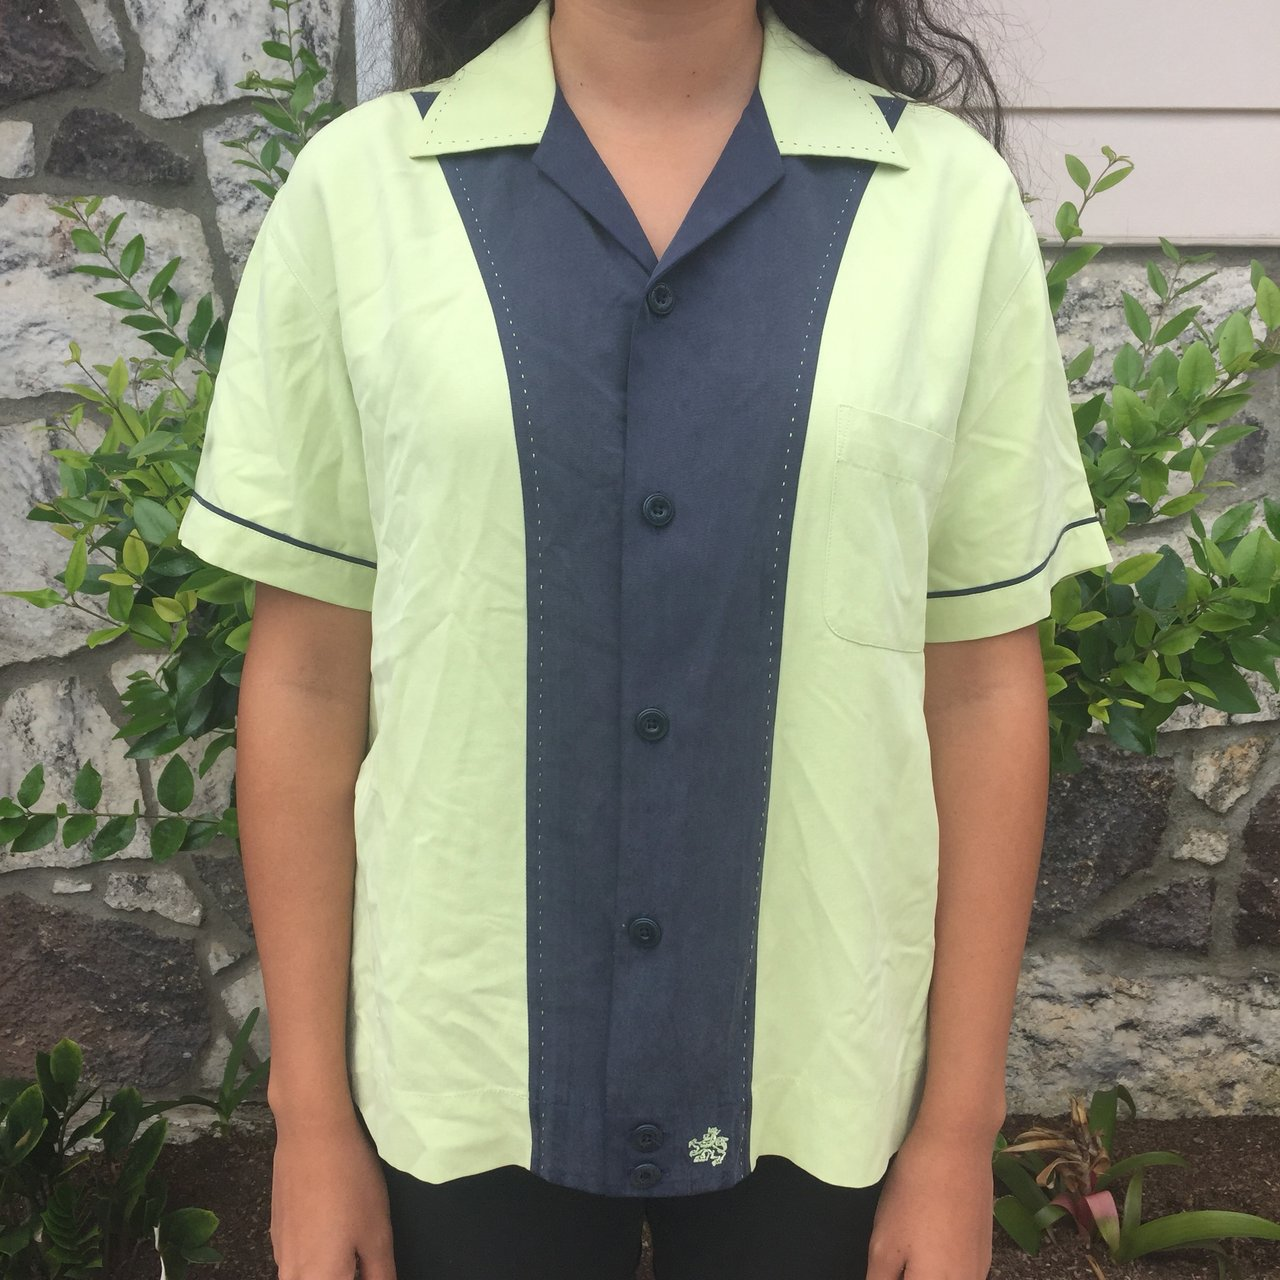 8004bcf716a Vintage green and blue button up top. Very 1950s bowling In - Depop